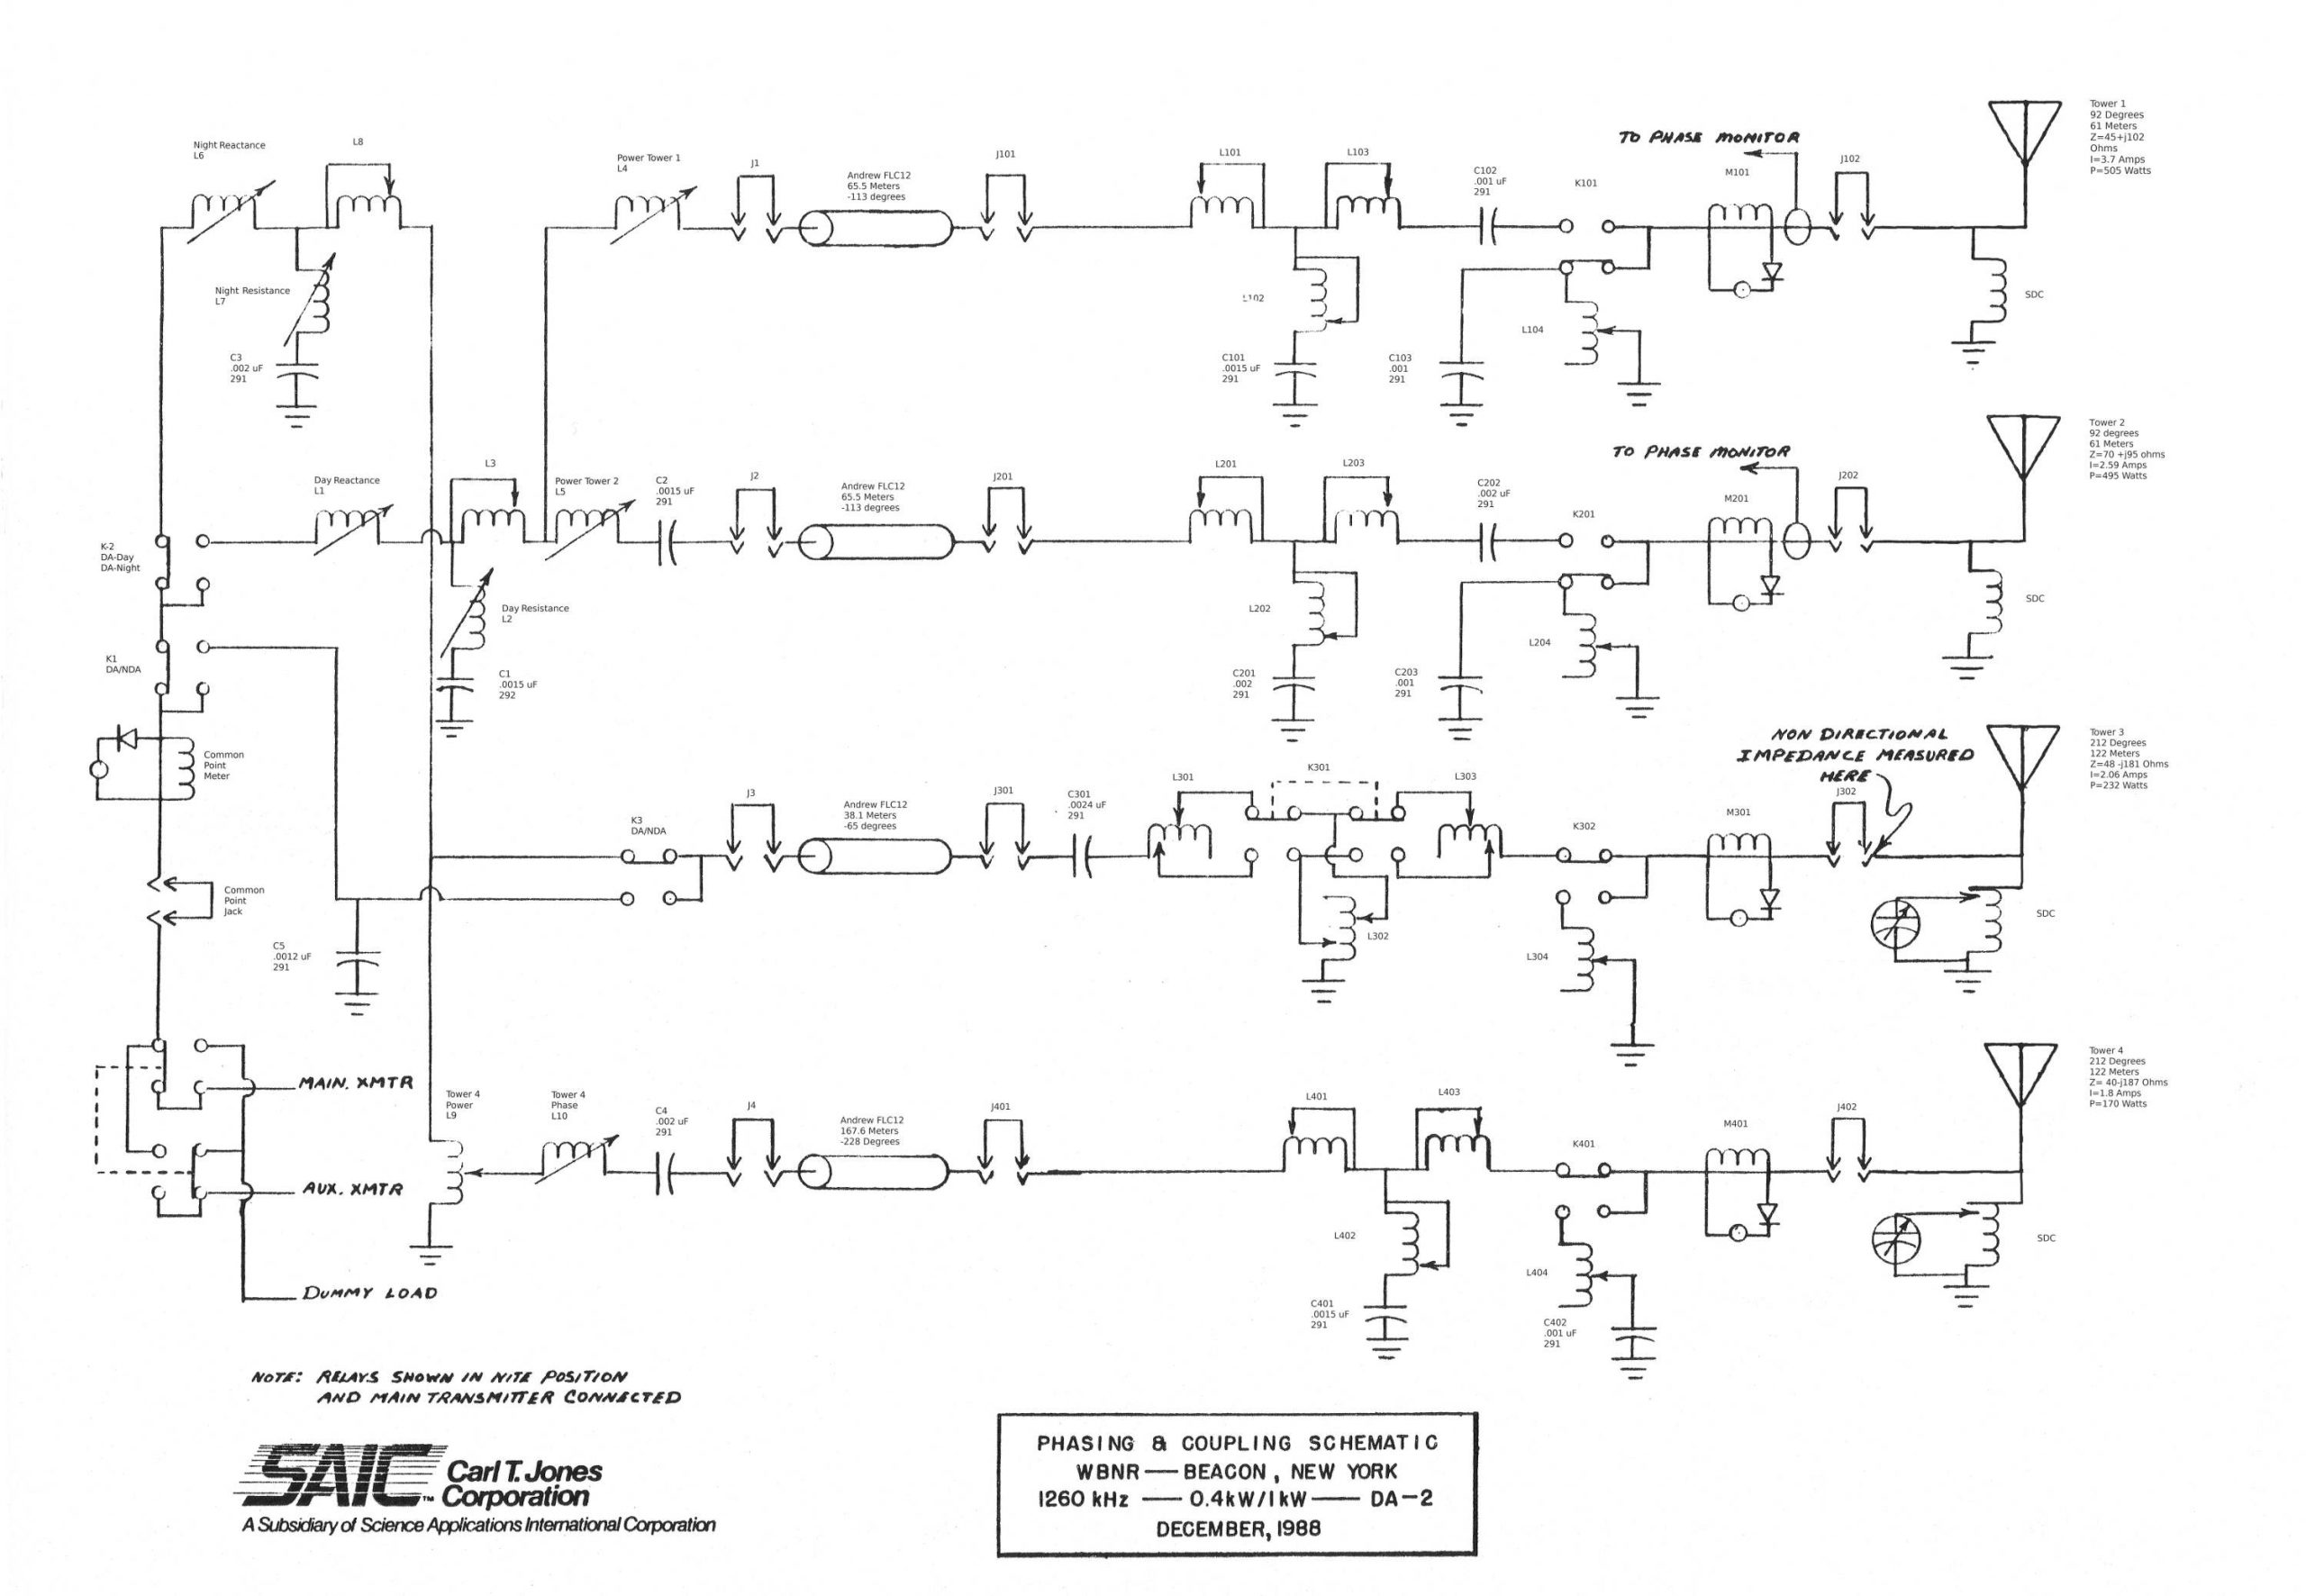 Schematic diagram WBNR day/night antenna systems